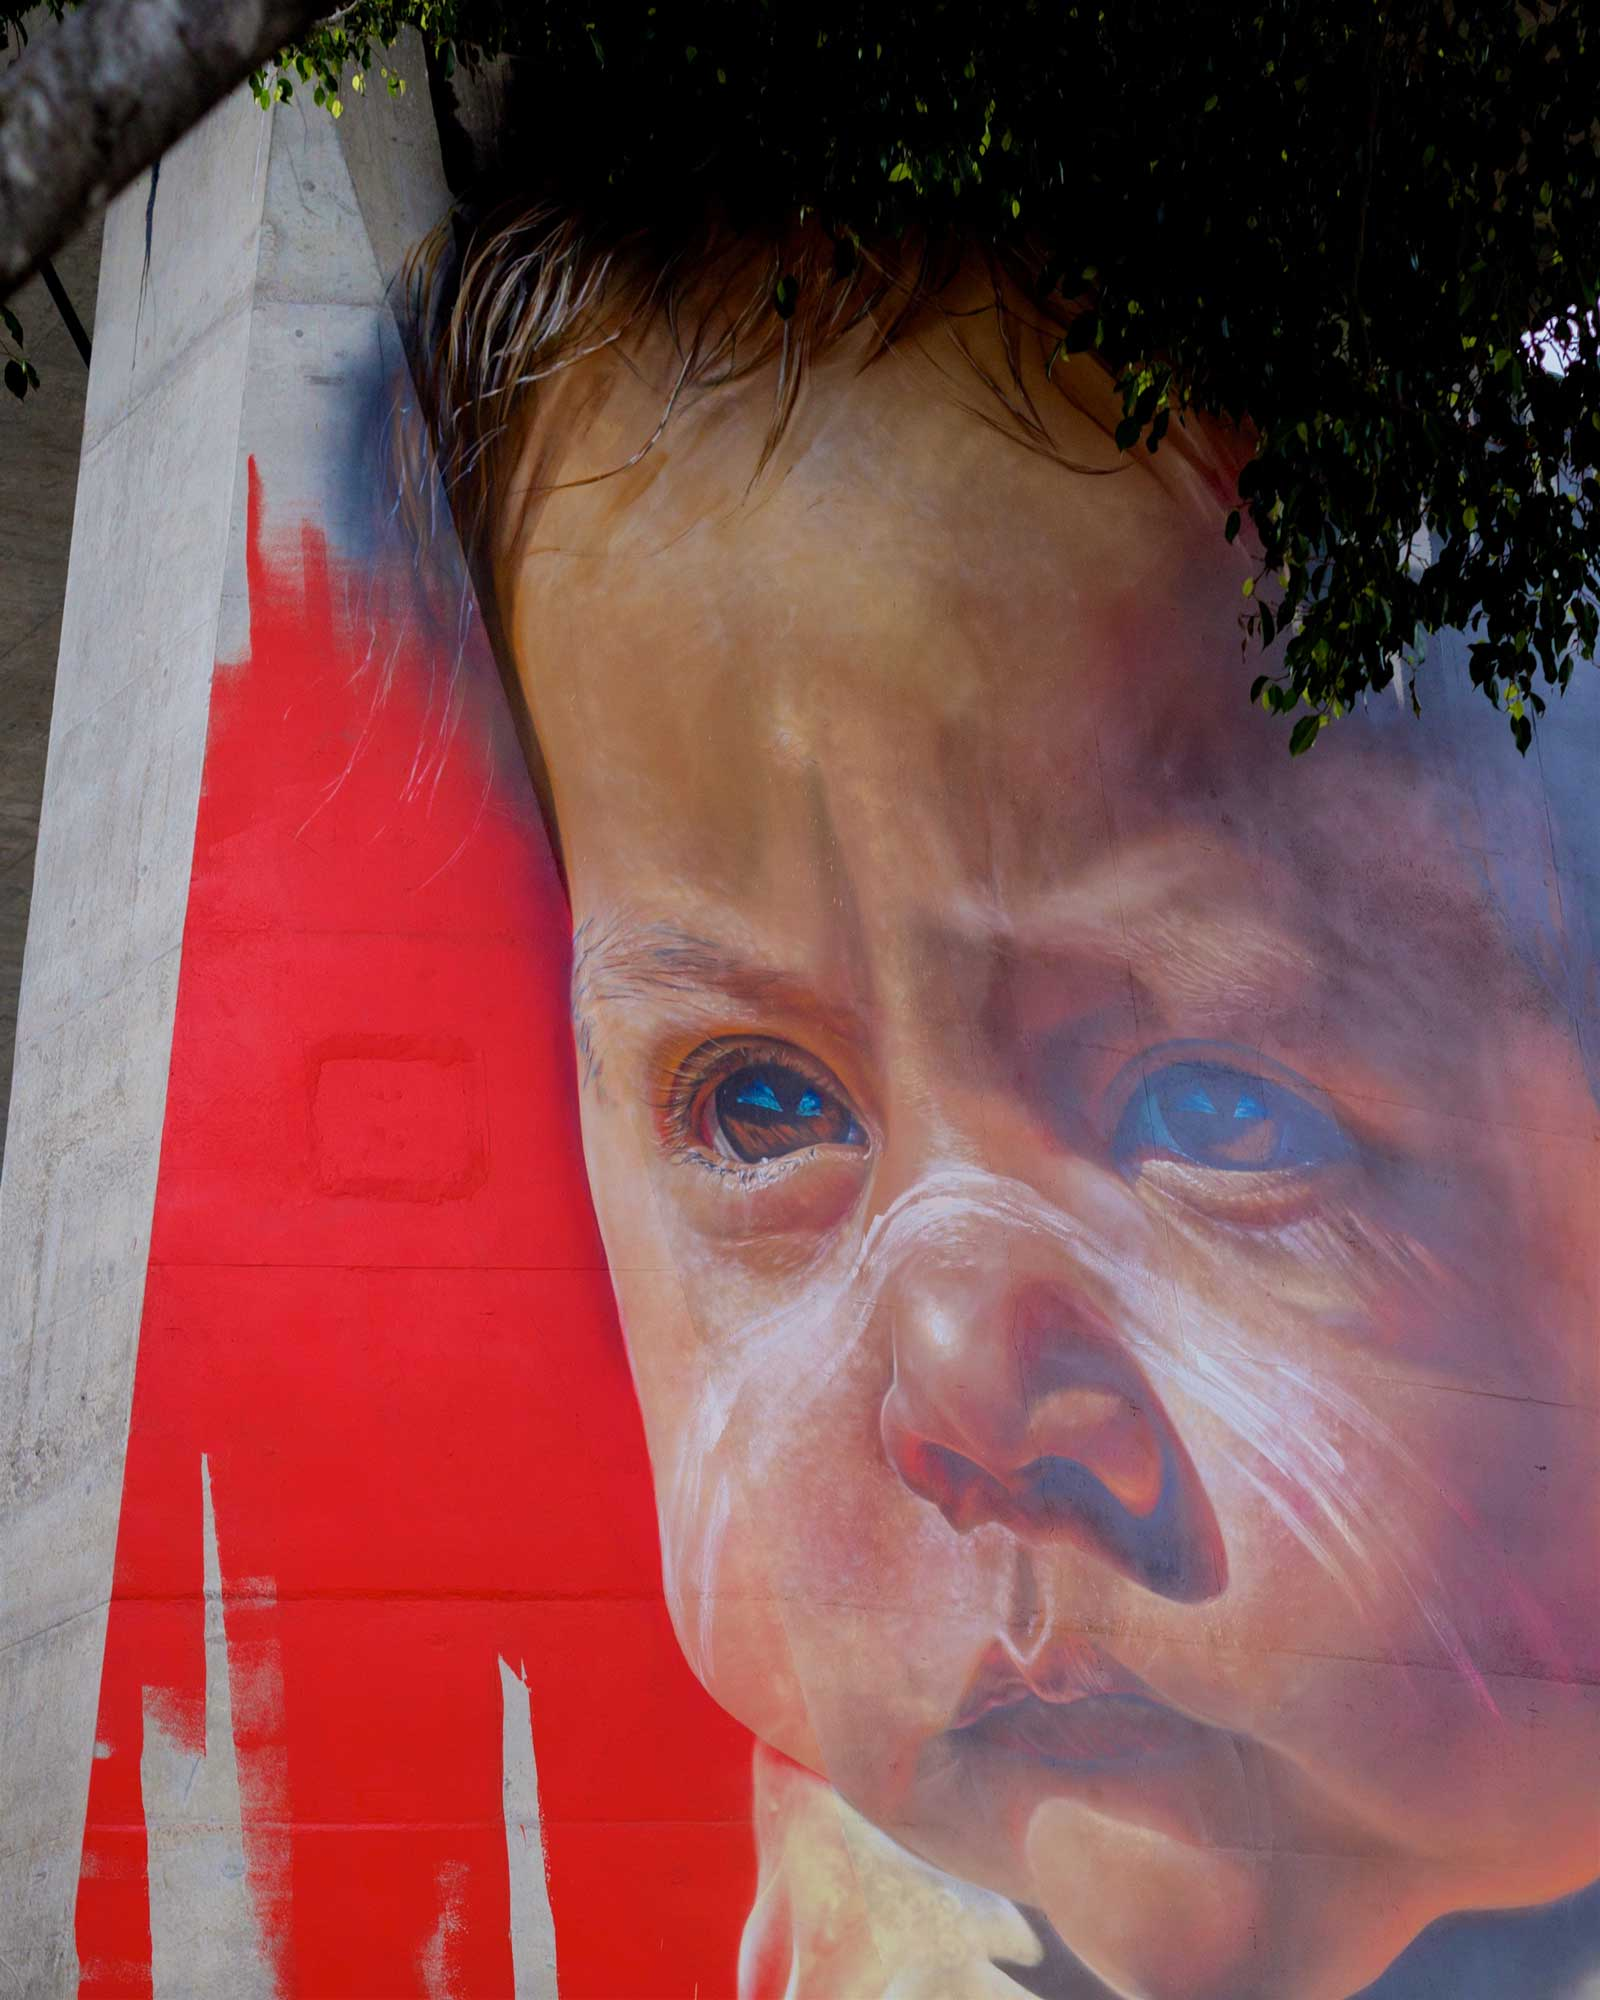 ADNATE - The desire behind painting an indigenous portrait is to connect with each individual viewer on a deeper level, even if it's just for a moment, to provoke emotion, thought, conversation, and bring about awareness of the issues facing Aboriginal people today.See more →